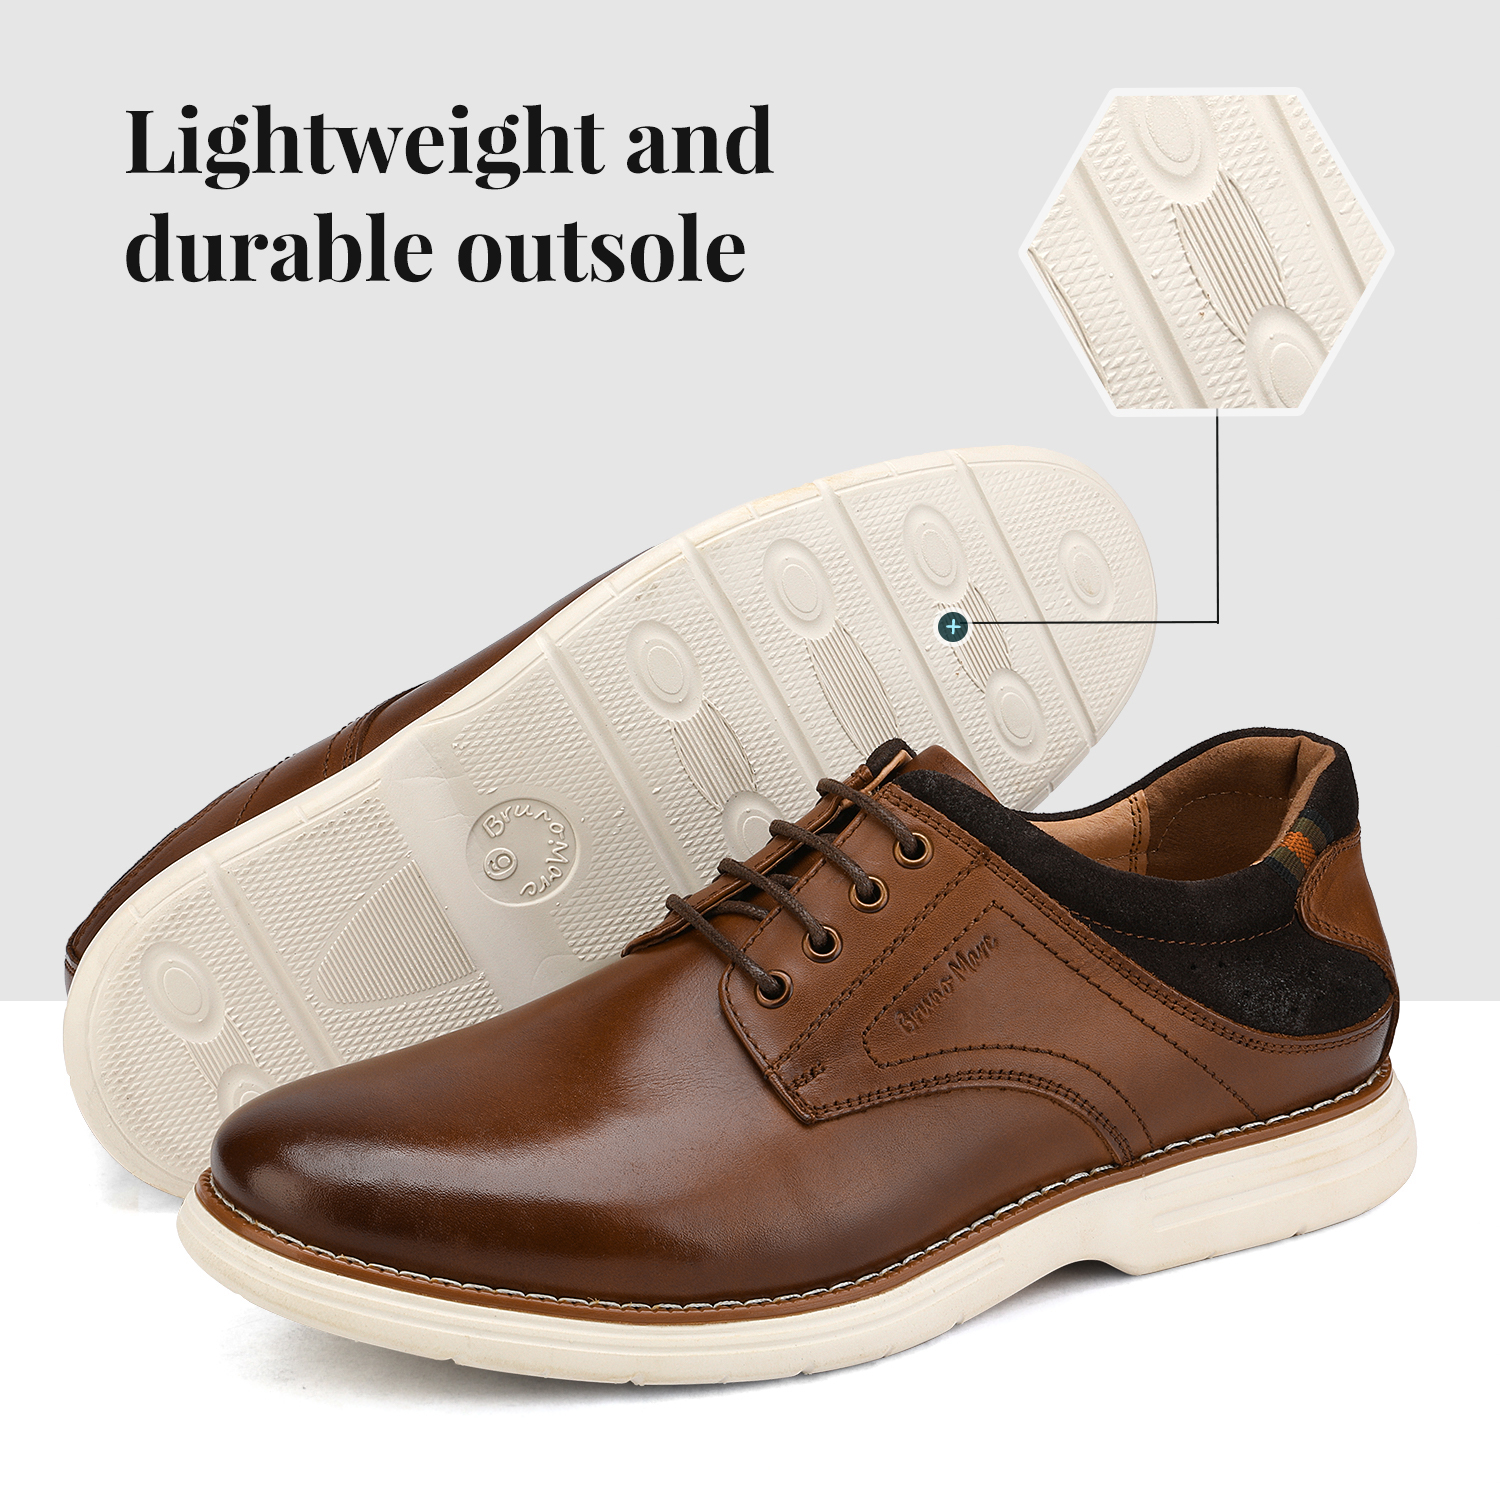 Mens-Fashion-Genuine-Leather-Business-Dress-Sneakers-Casual-Lace-up-Oxford-Shoe thumbnail 36